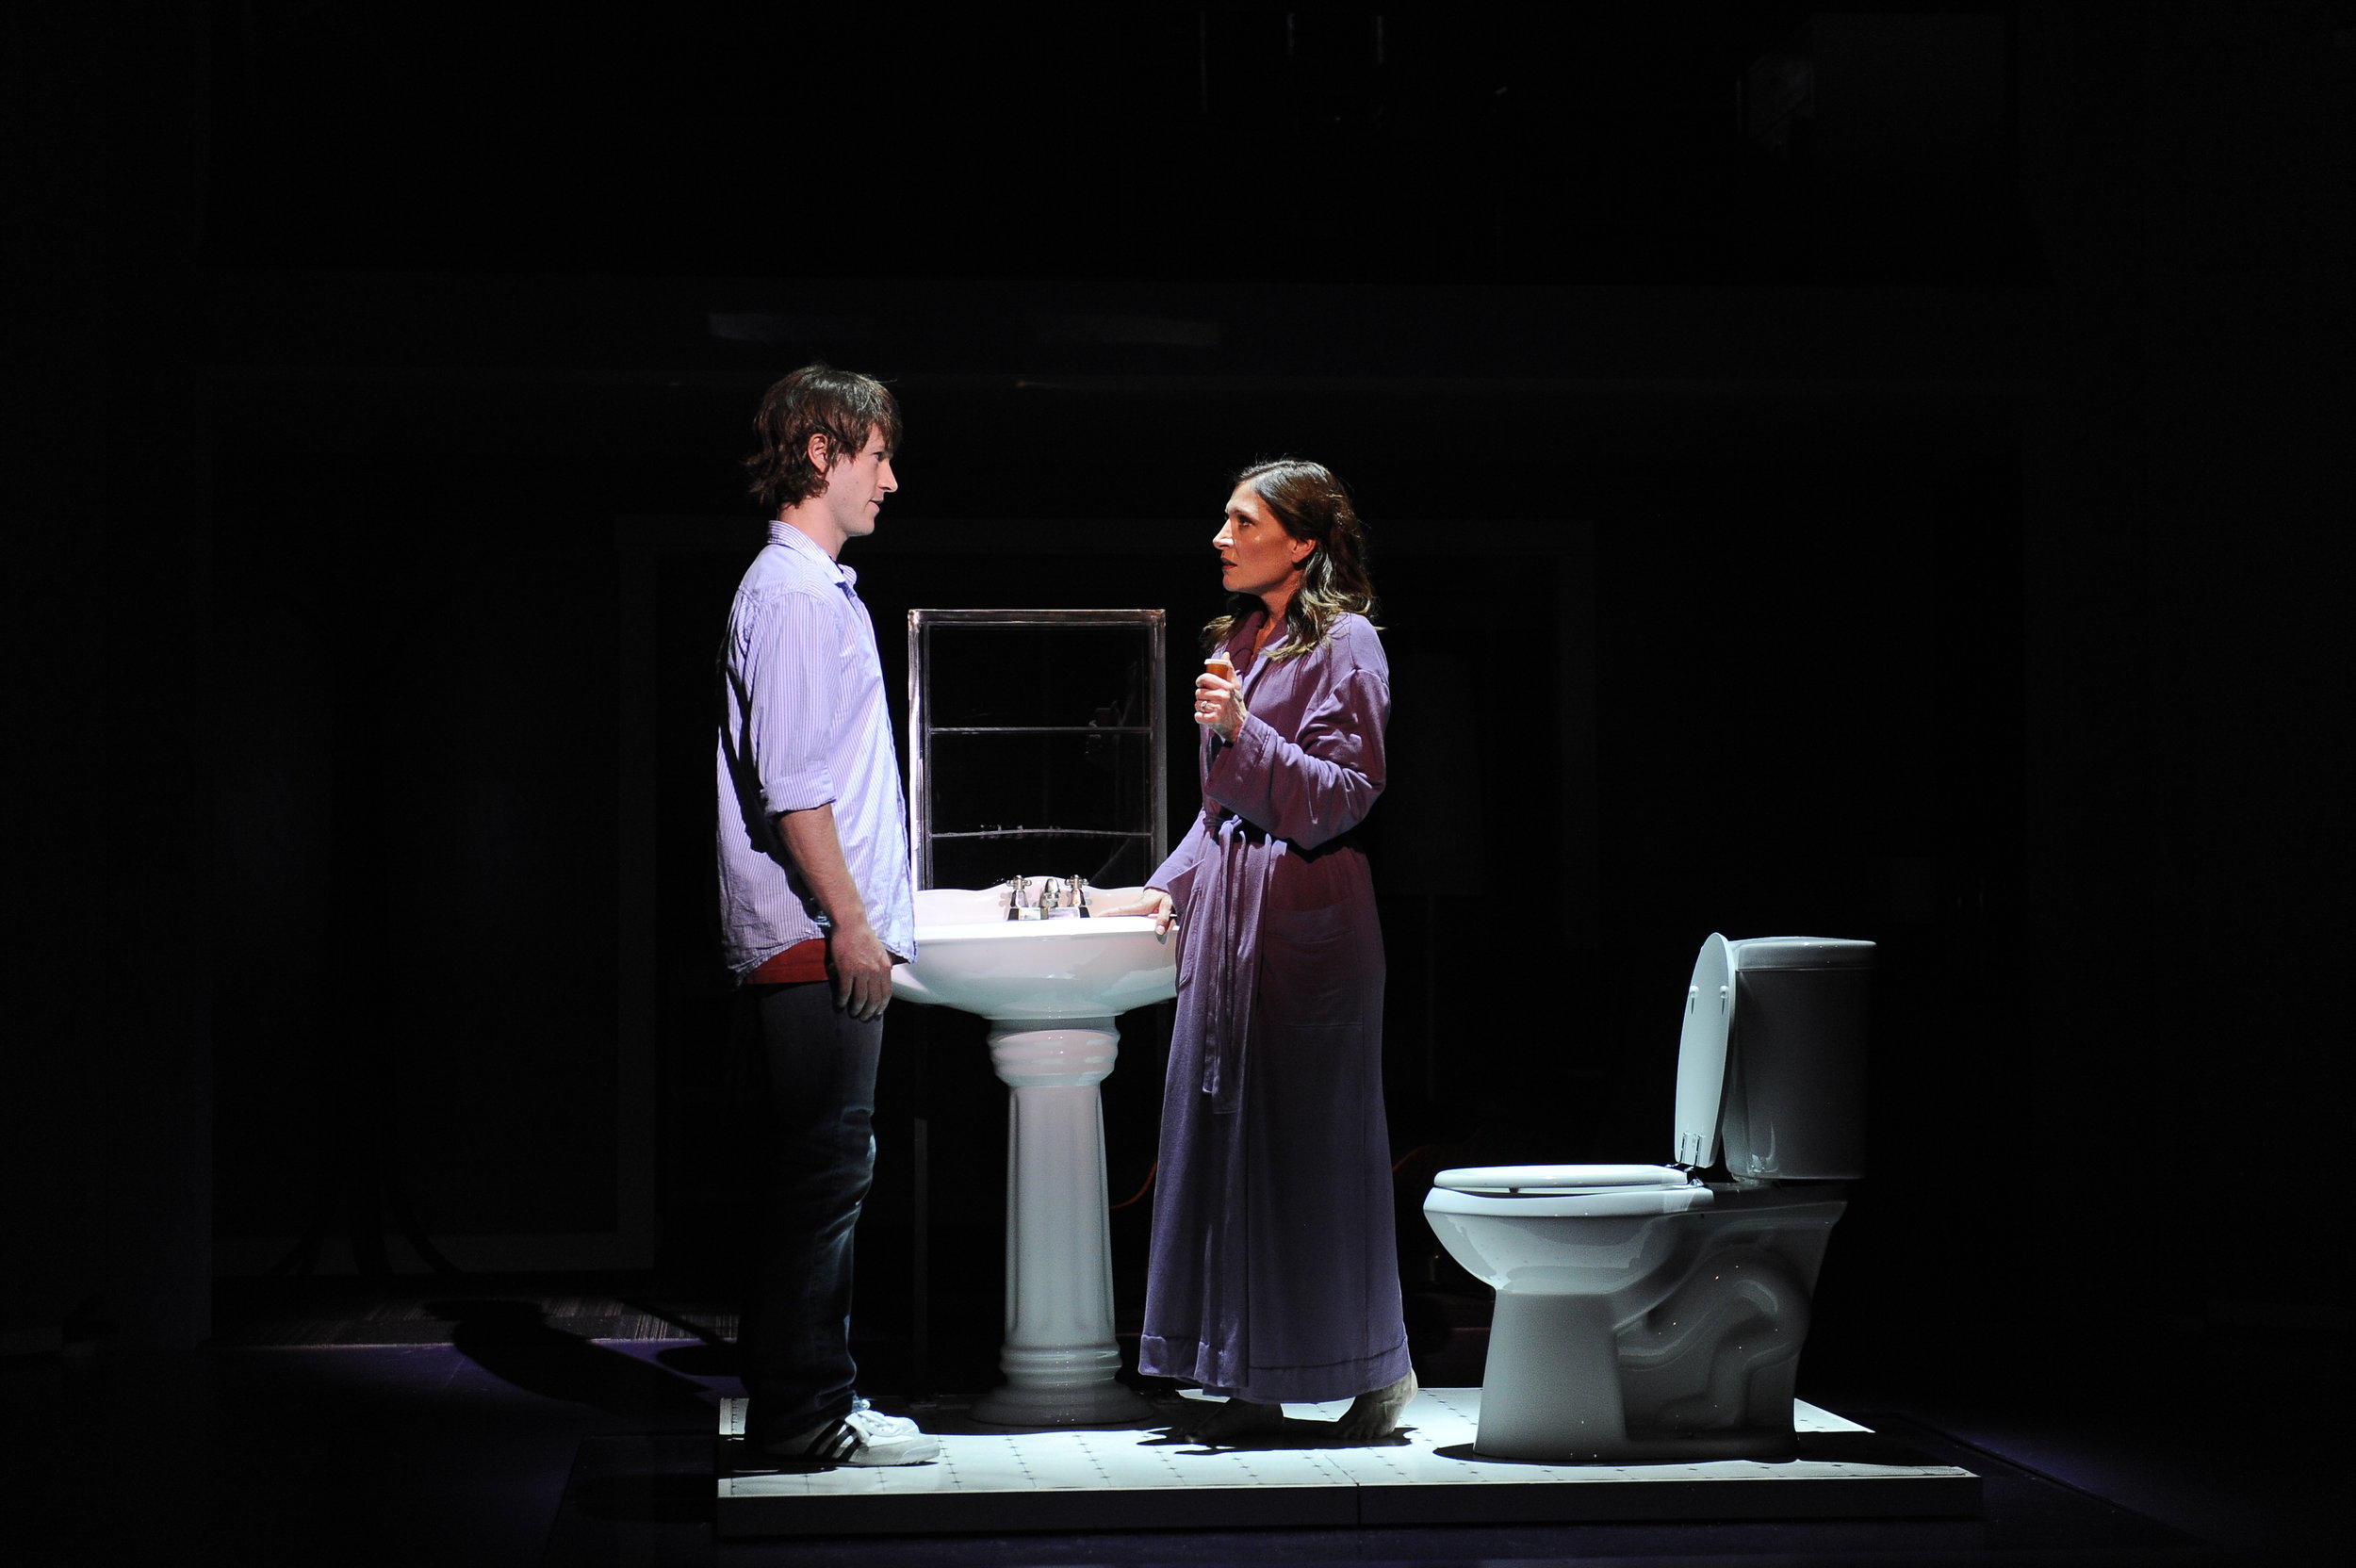 Diana (Catherine Porter) confronts her son, Gabe (Cary Tedder). Photo: Greg Mooney, courtesy of Alliance Theatre, Atlanta